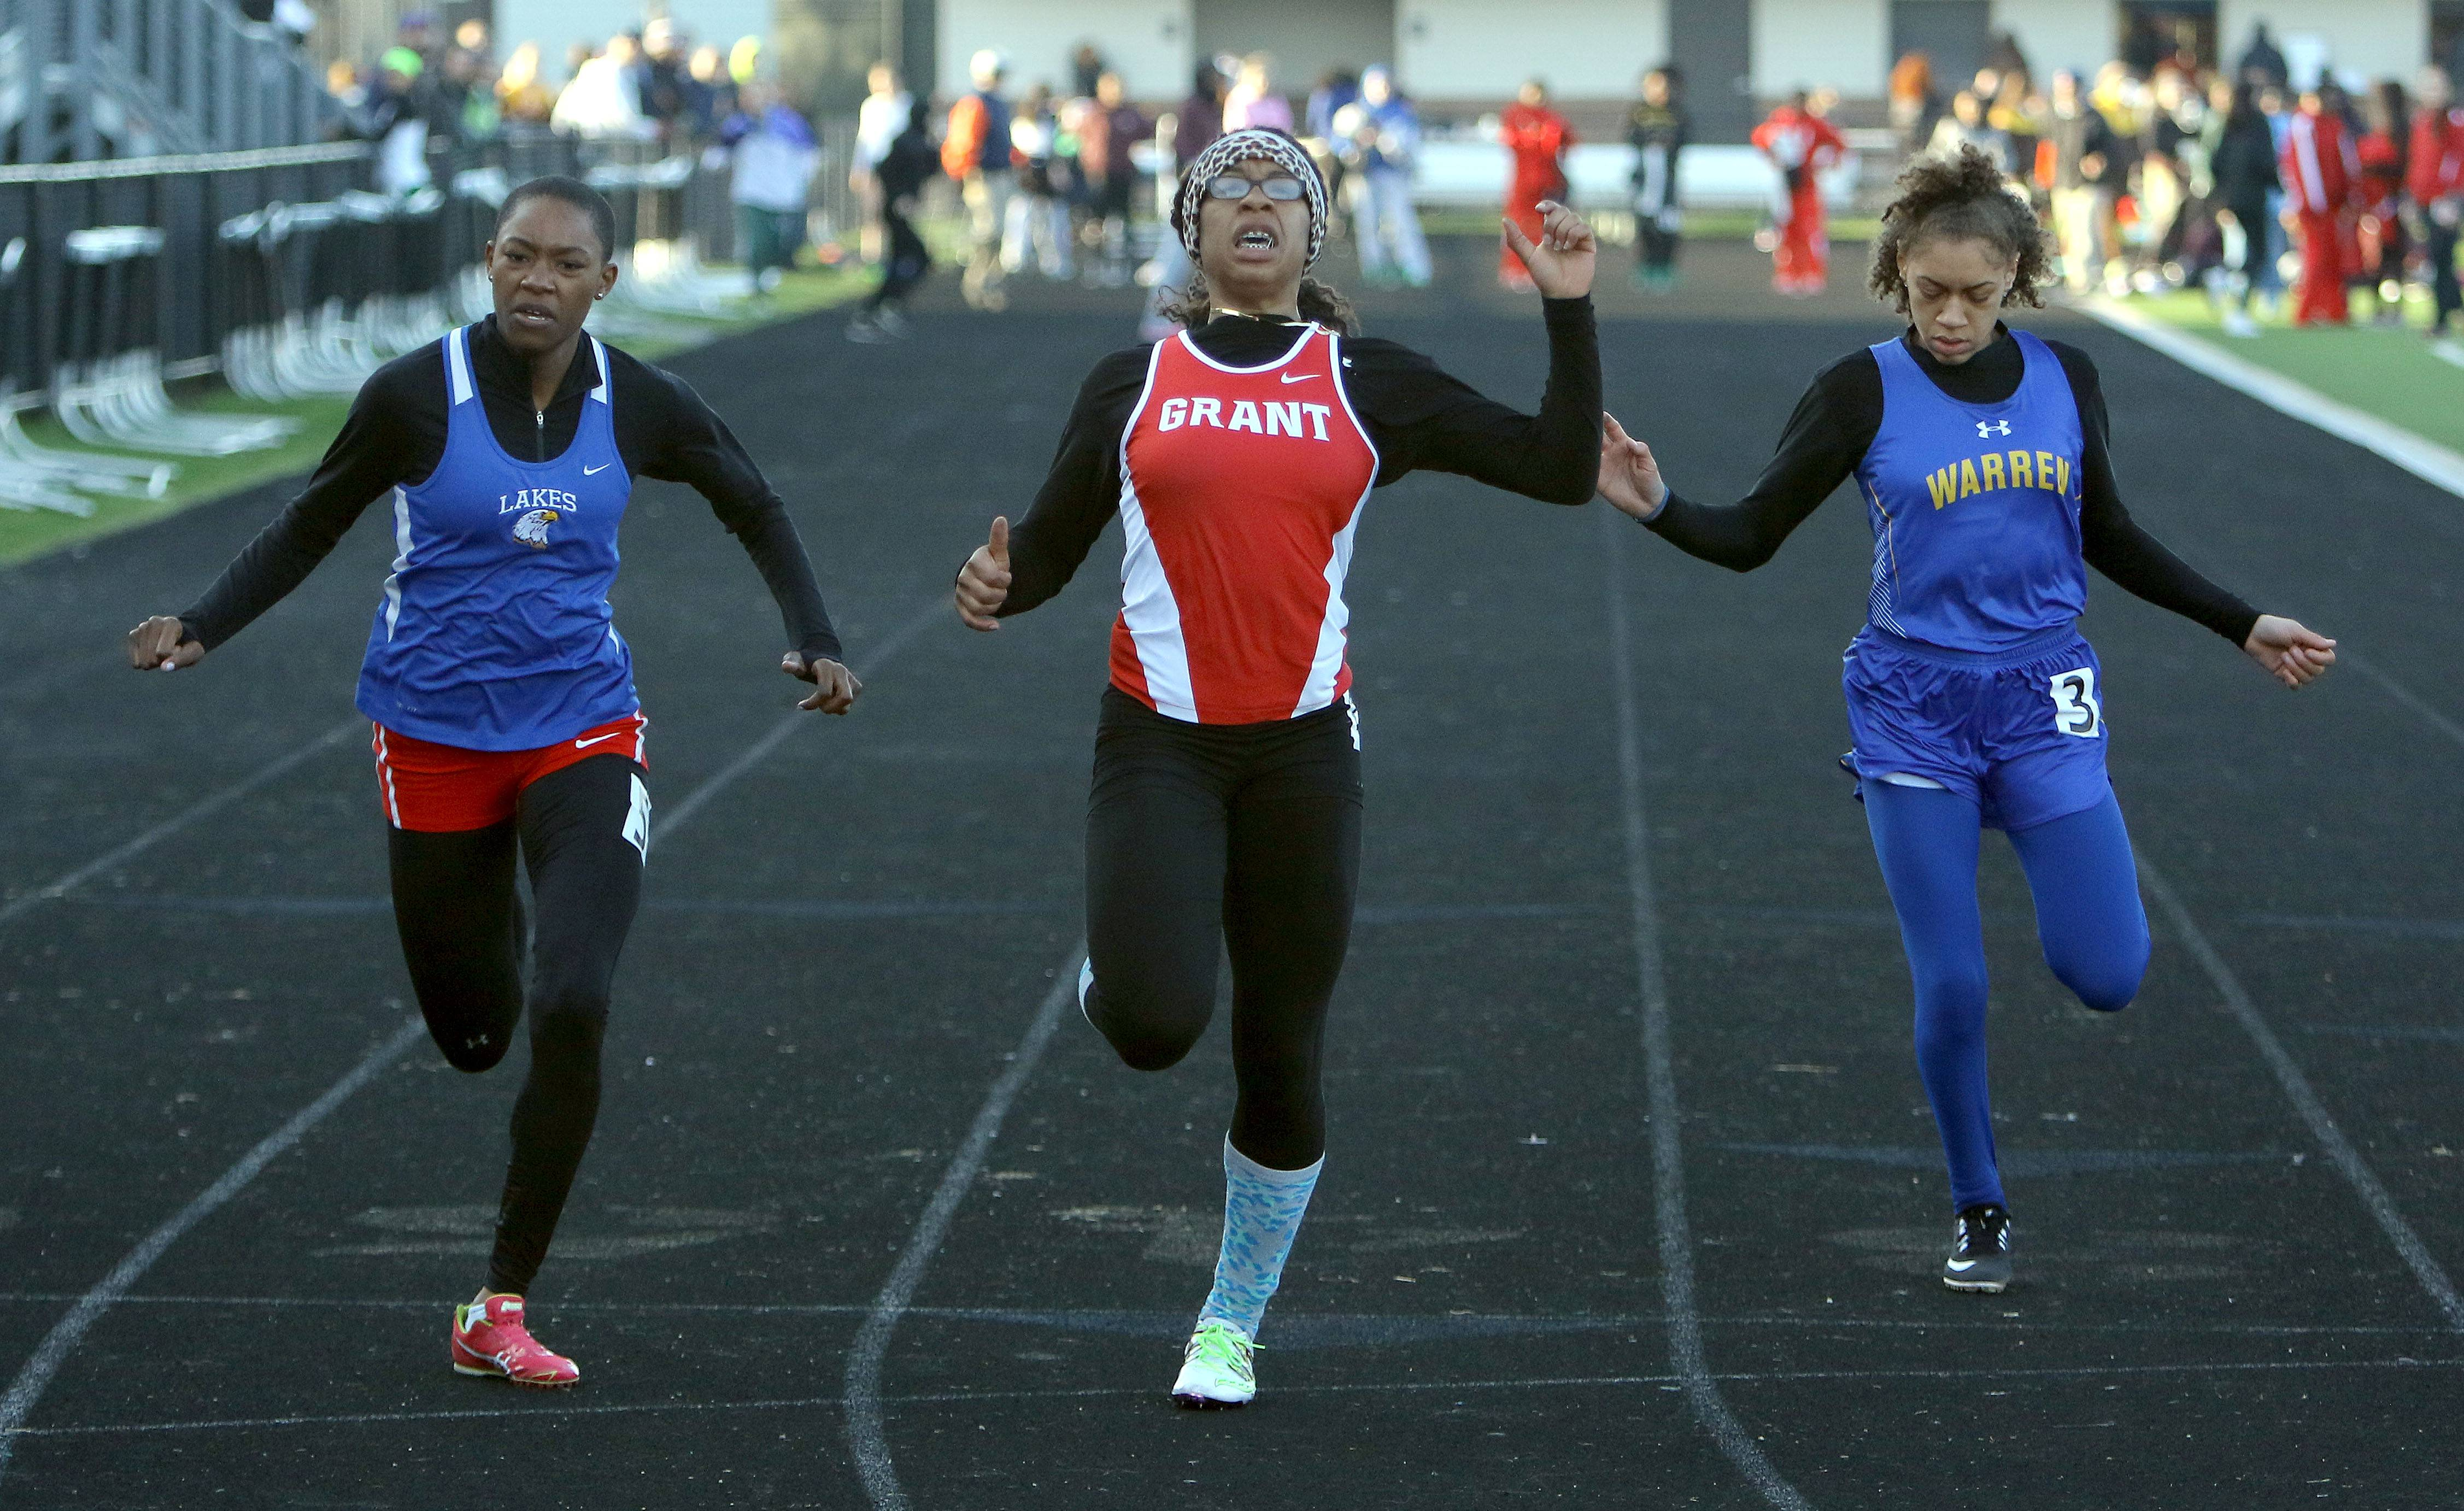 From left, Lakes' Taylor Tilman, Grant's Ariyona Wallace and Warren's Janii Jenkins cross the finish in the 100-meter dash during the Lake County girl track meet Friday at Grayslake North High School.